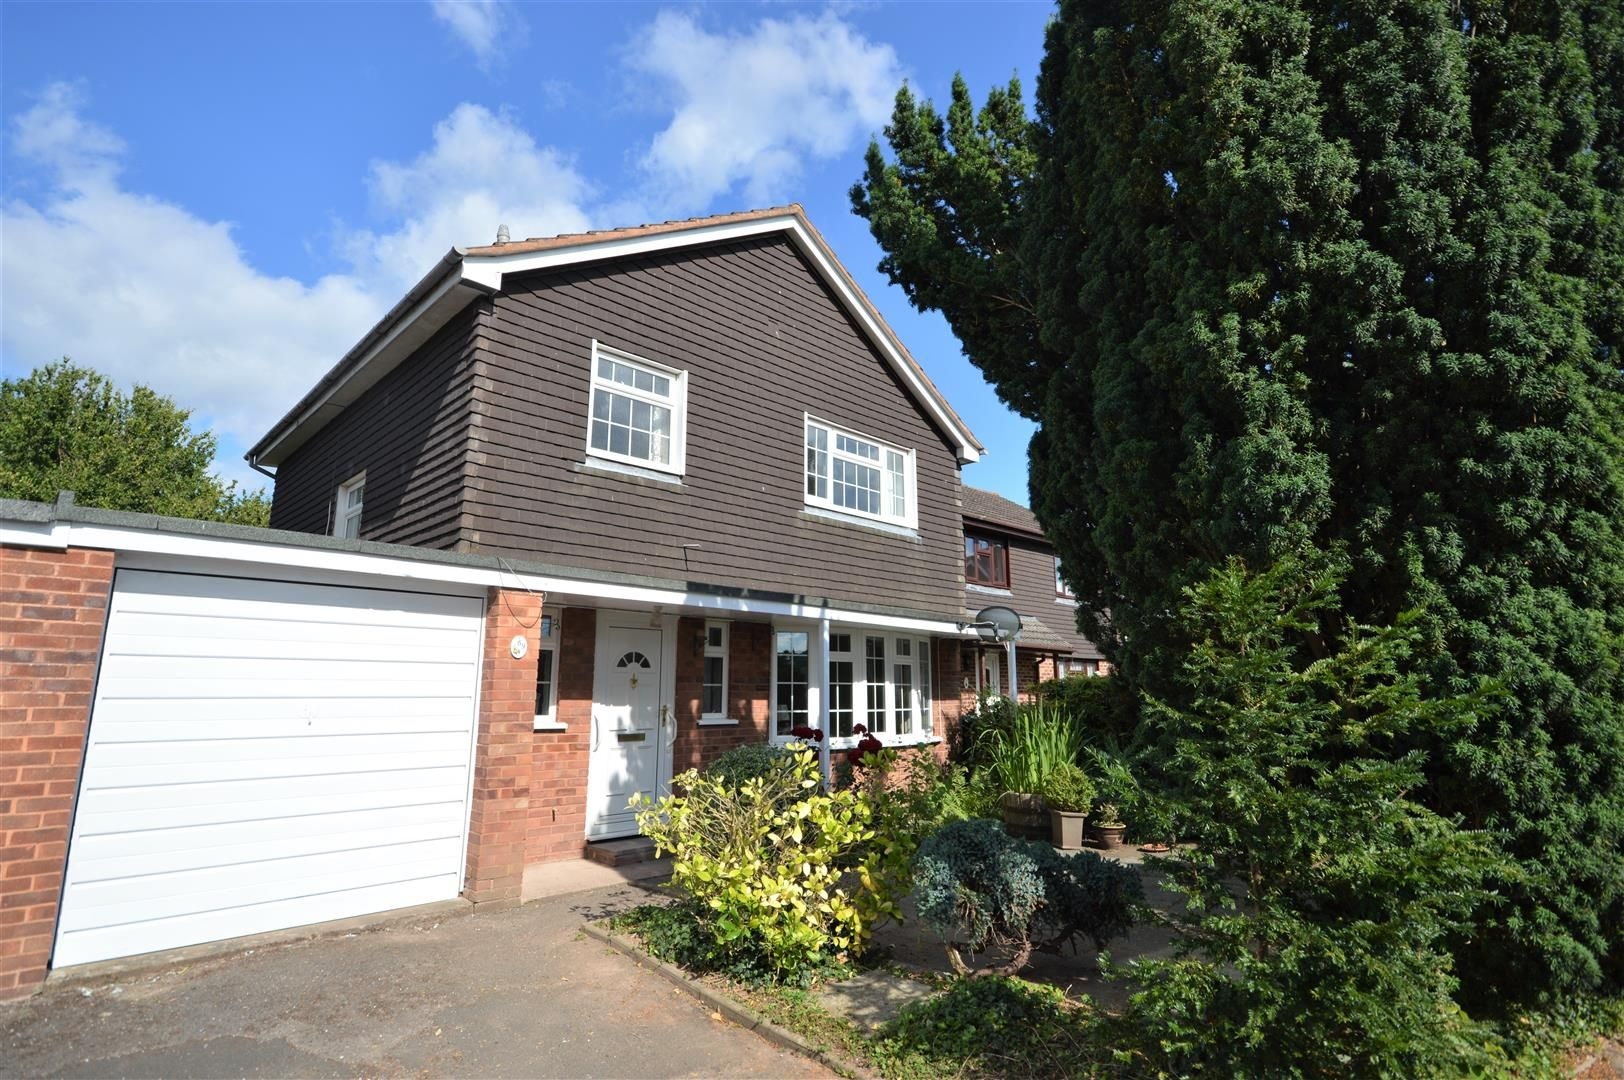 3 bed link-detached-house for sale in Weobley, HR4